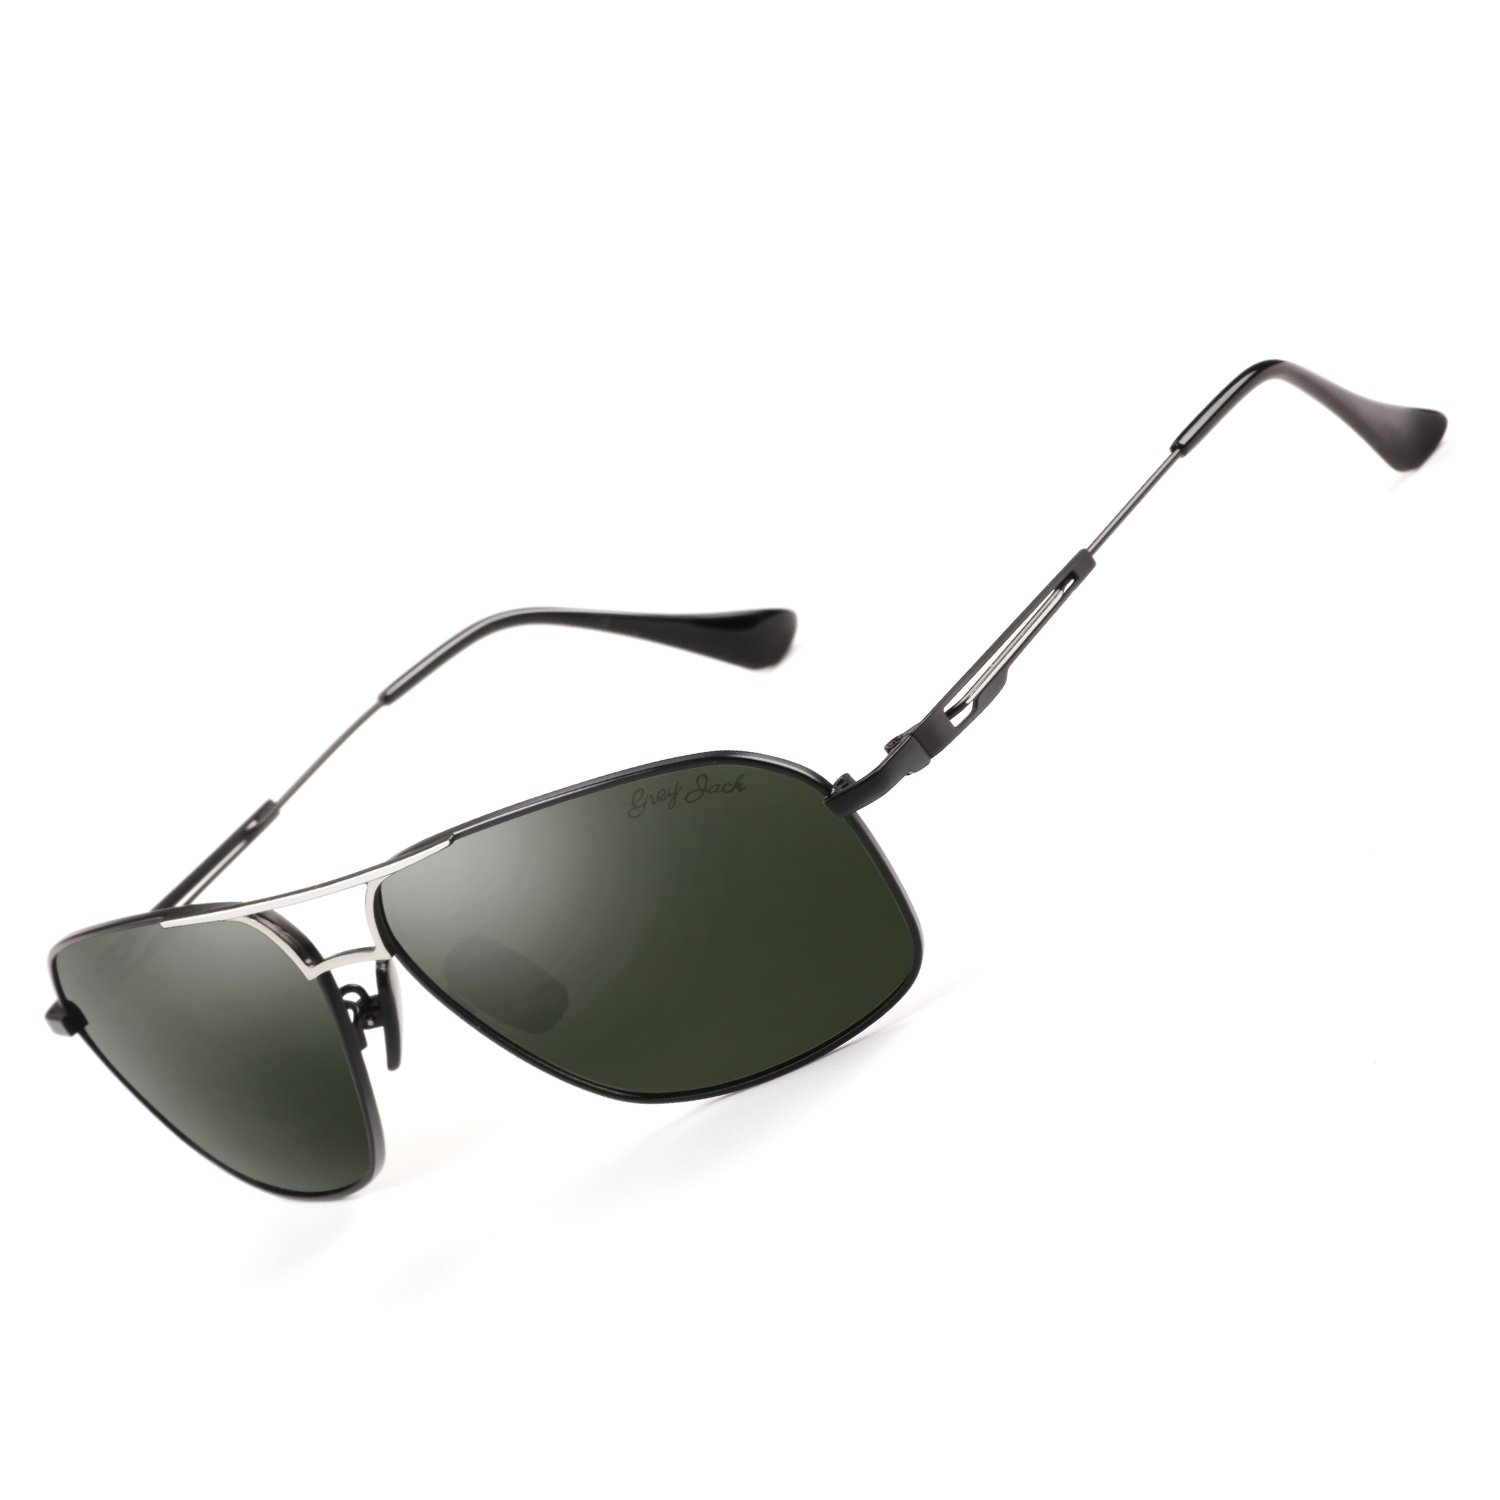 26005bbcd60 Amazon.com  GREY JACK Polarized Large Classic Aviator Sunglasses  Rectangular UV protection Lens for Men Women Black Frame Blackish green  Lens  Sports   ...